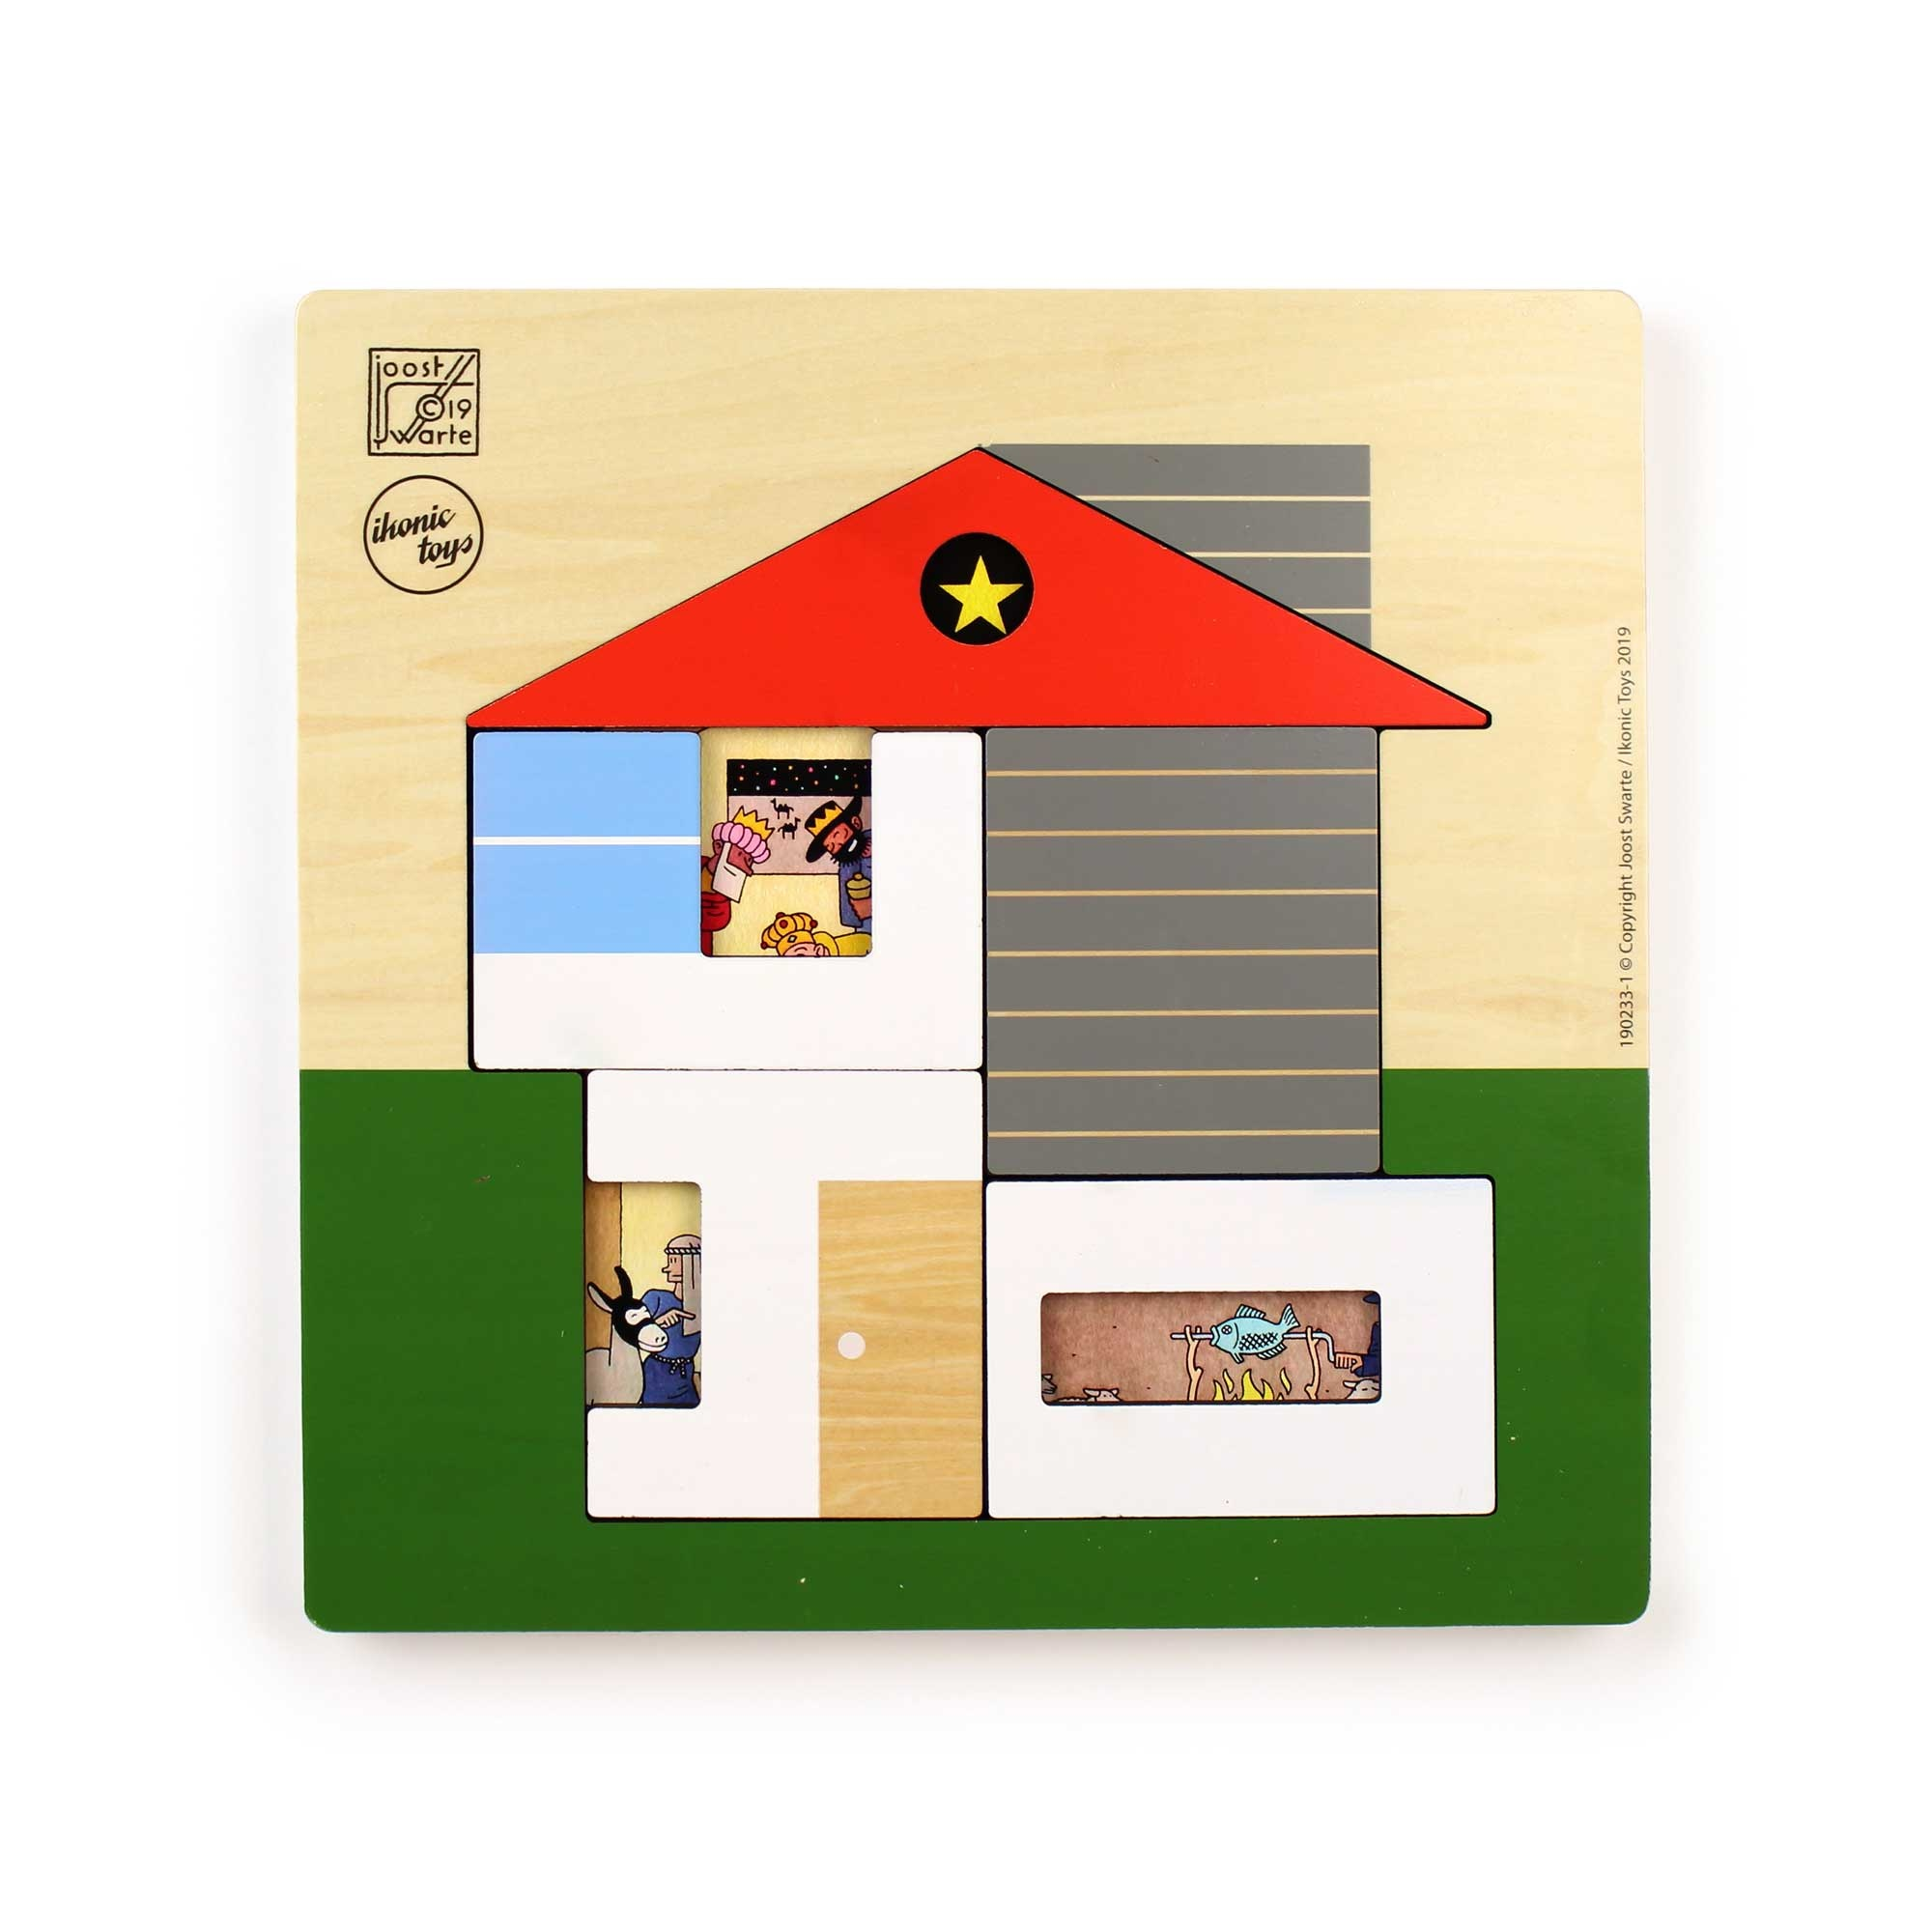 Ikonic Toys Joost Swarte House Puzzle